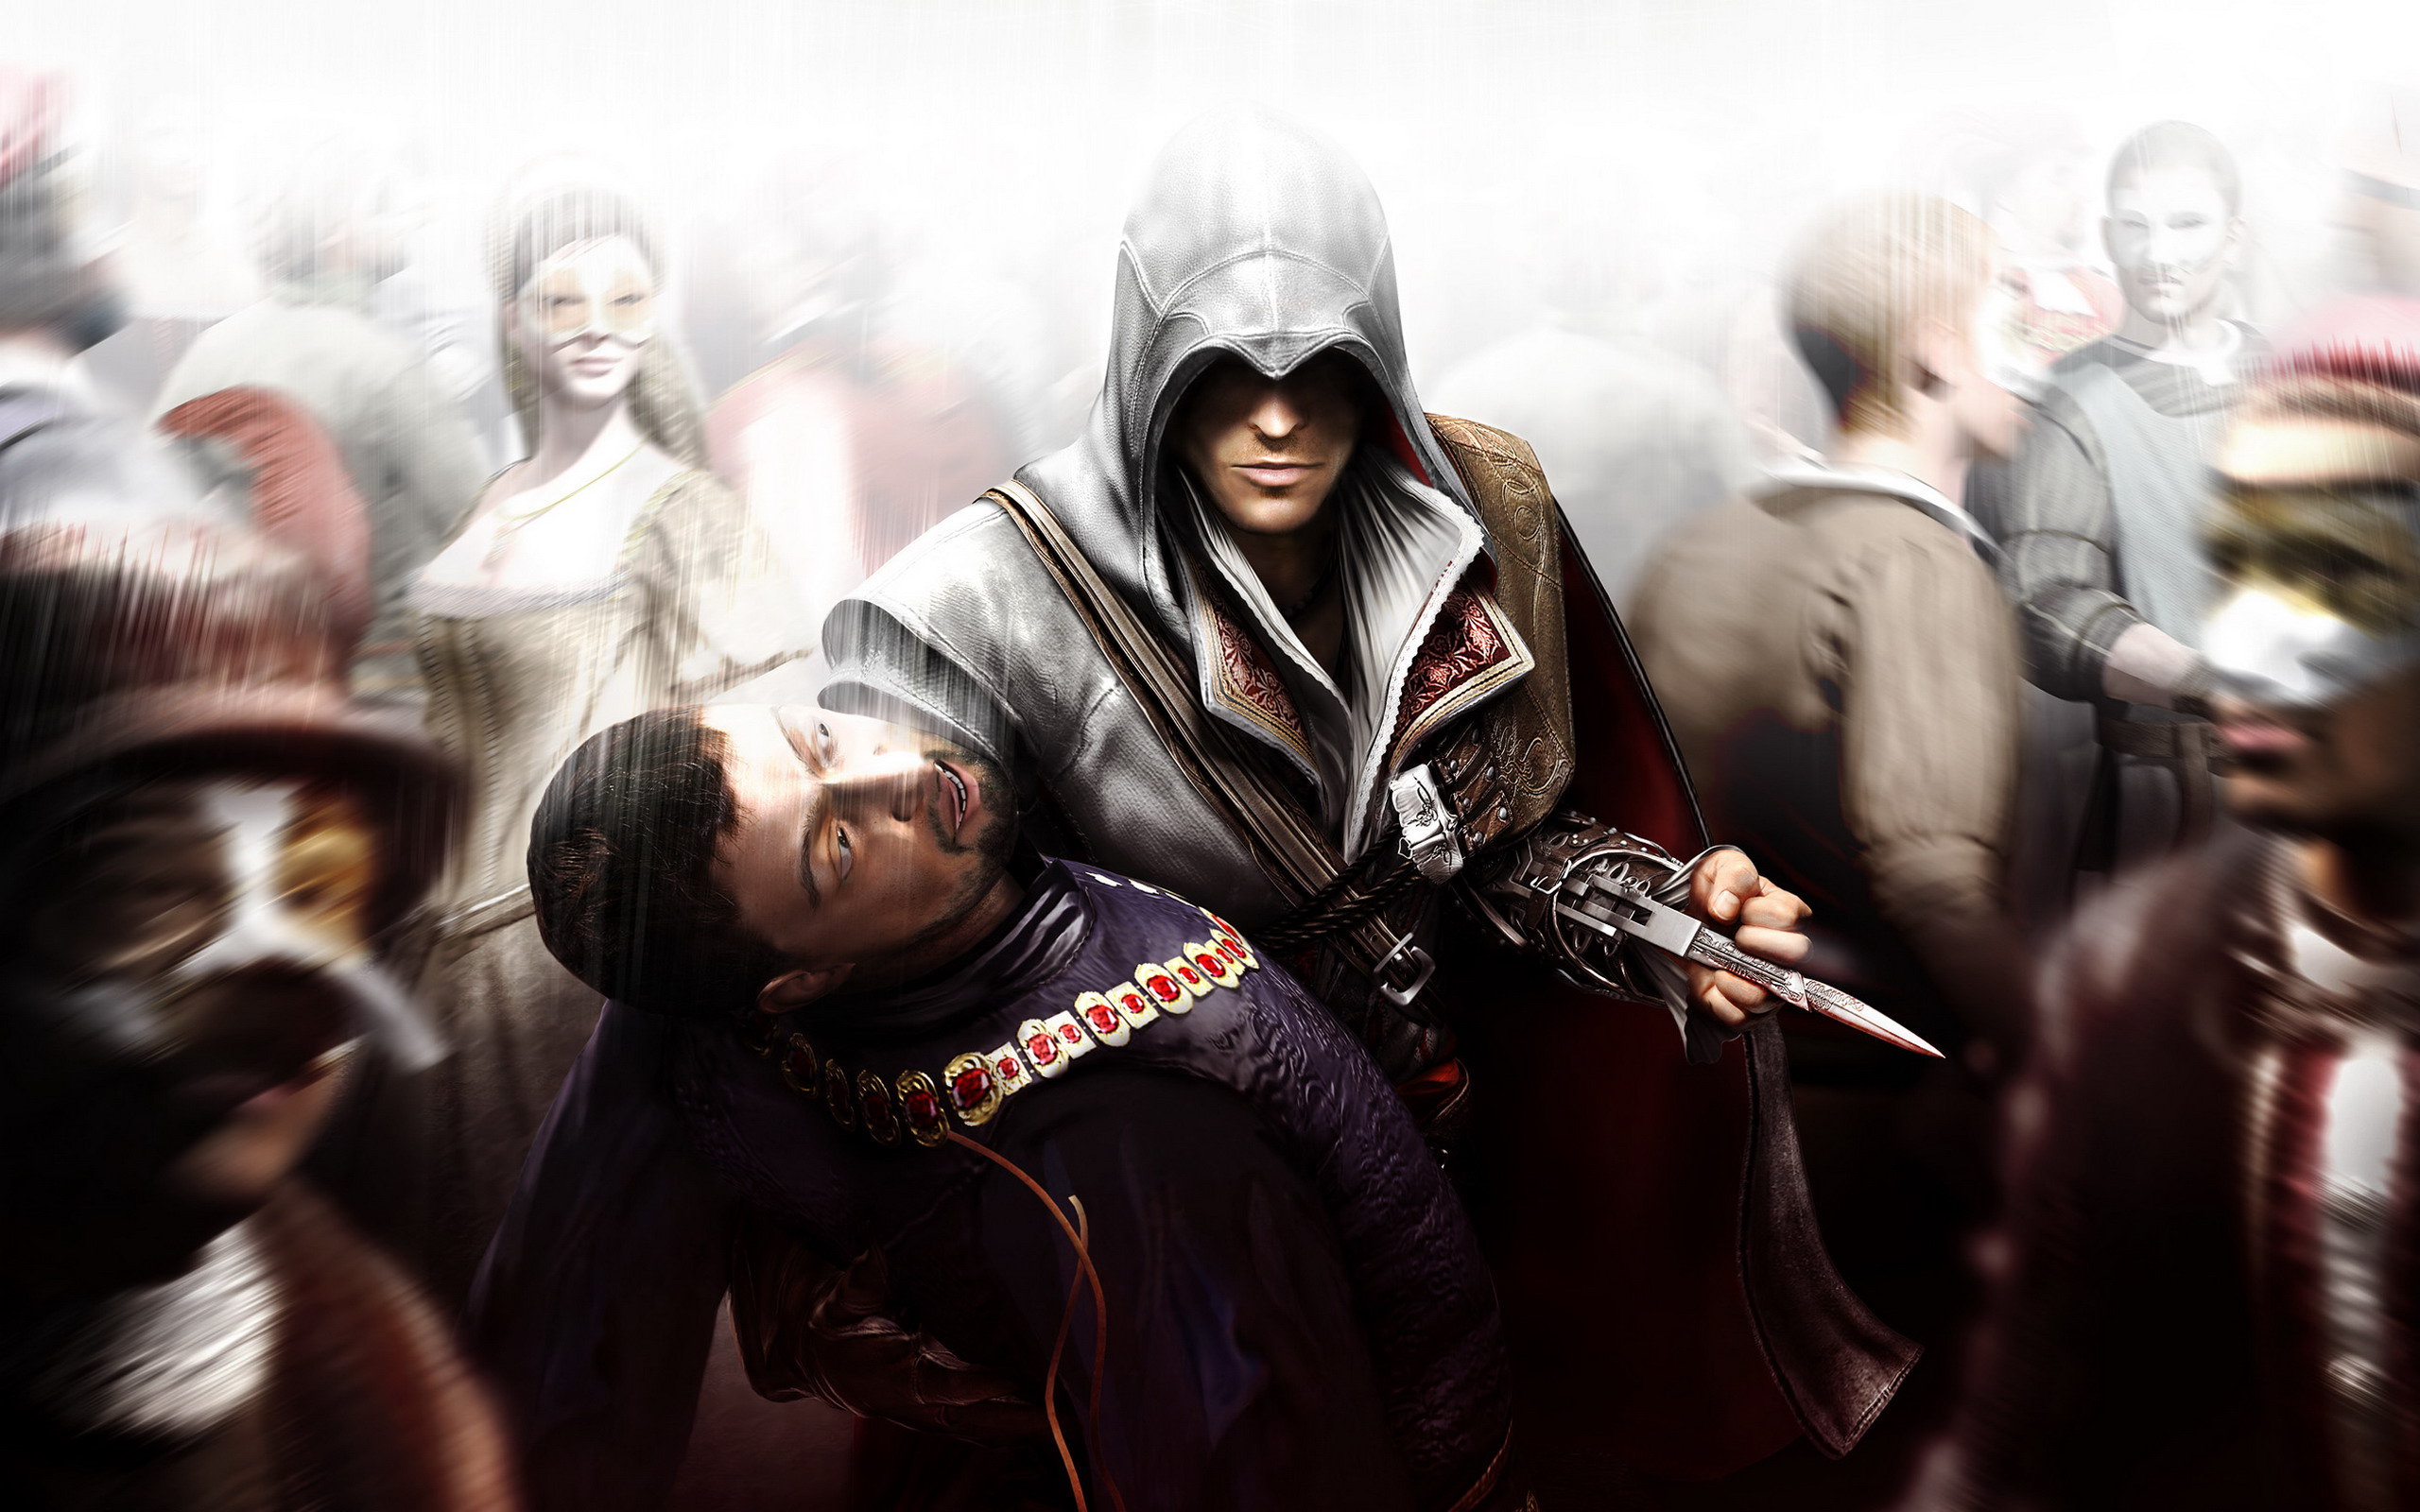 HQ Assasin's Creed